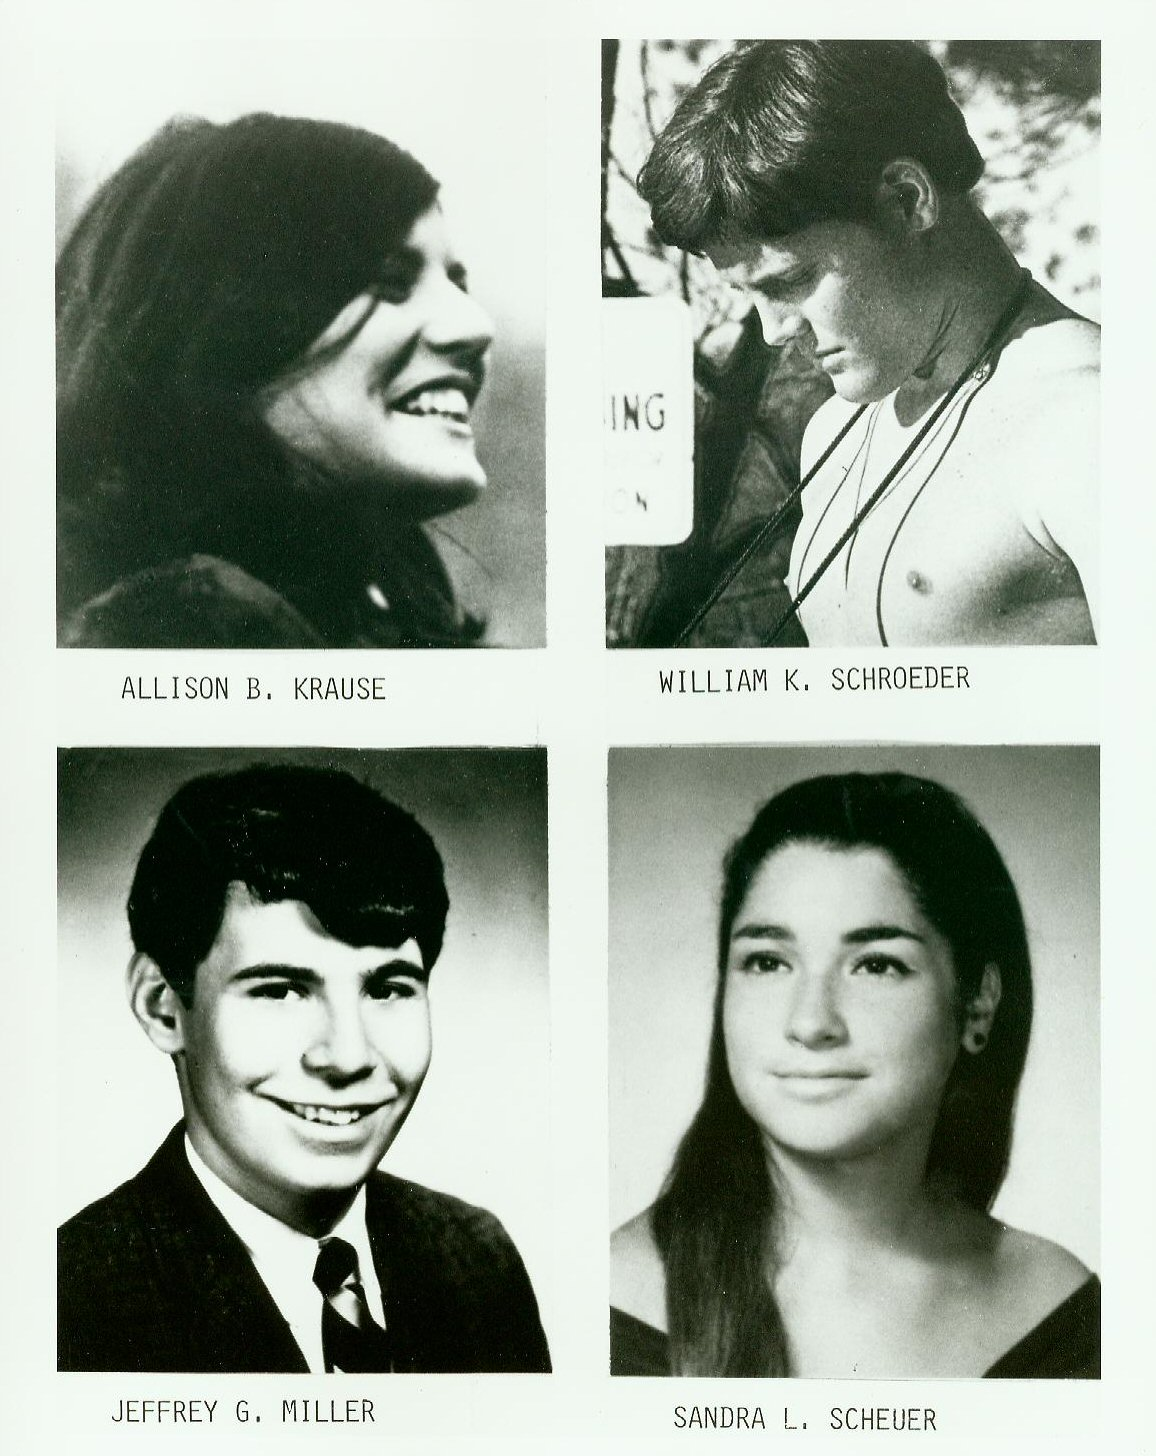 the murdered 4